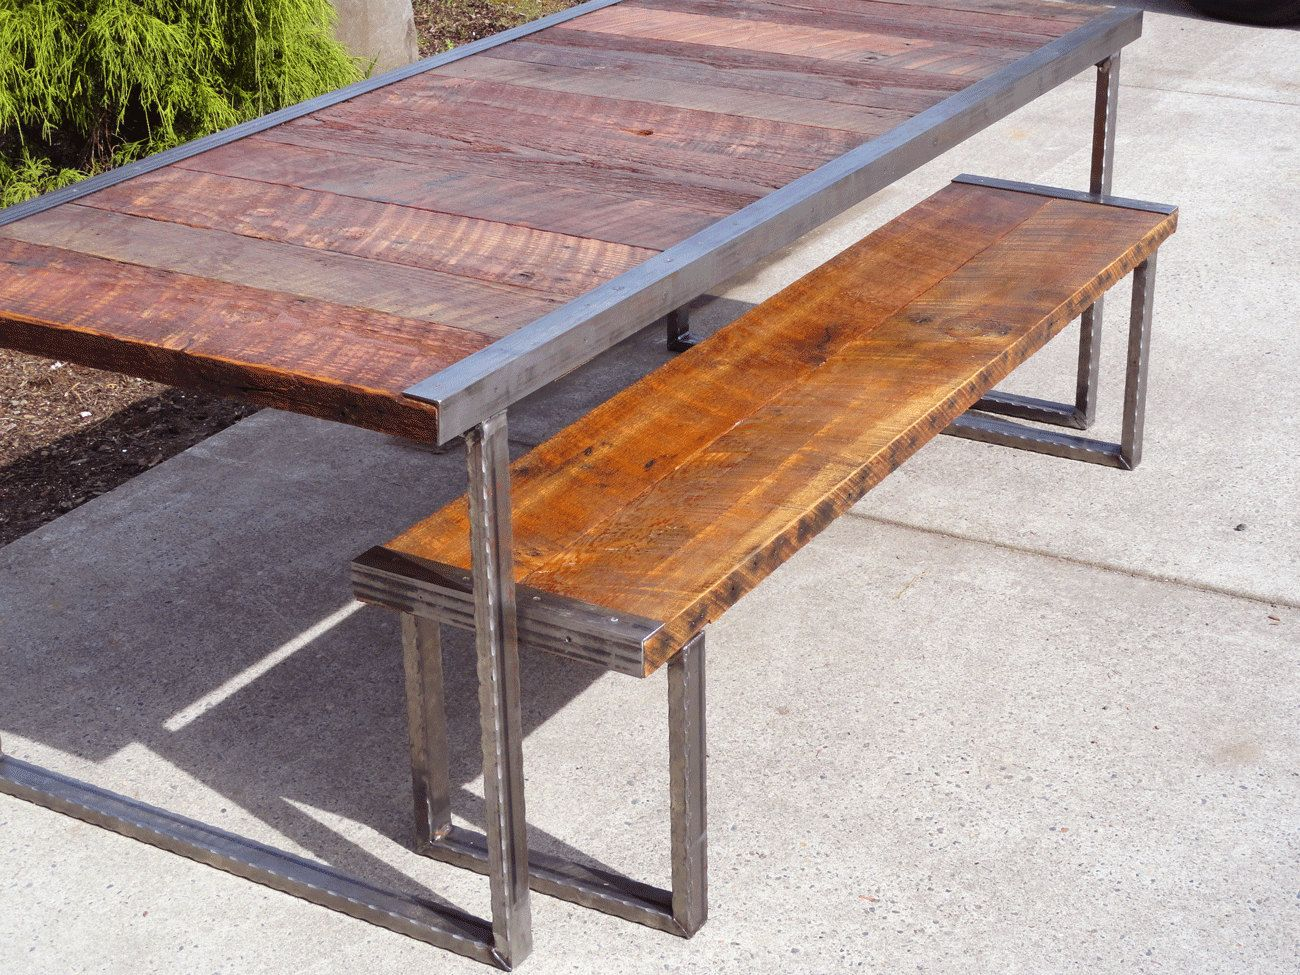 metal kitchen table 30 84 Industrial Dining Table with Raw Steel Square Legs 00 USD by